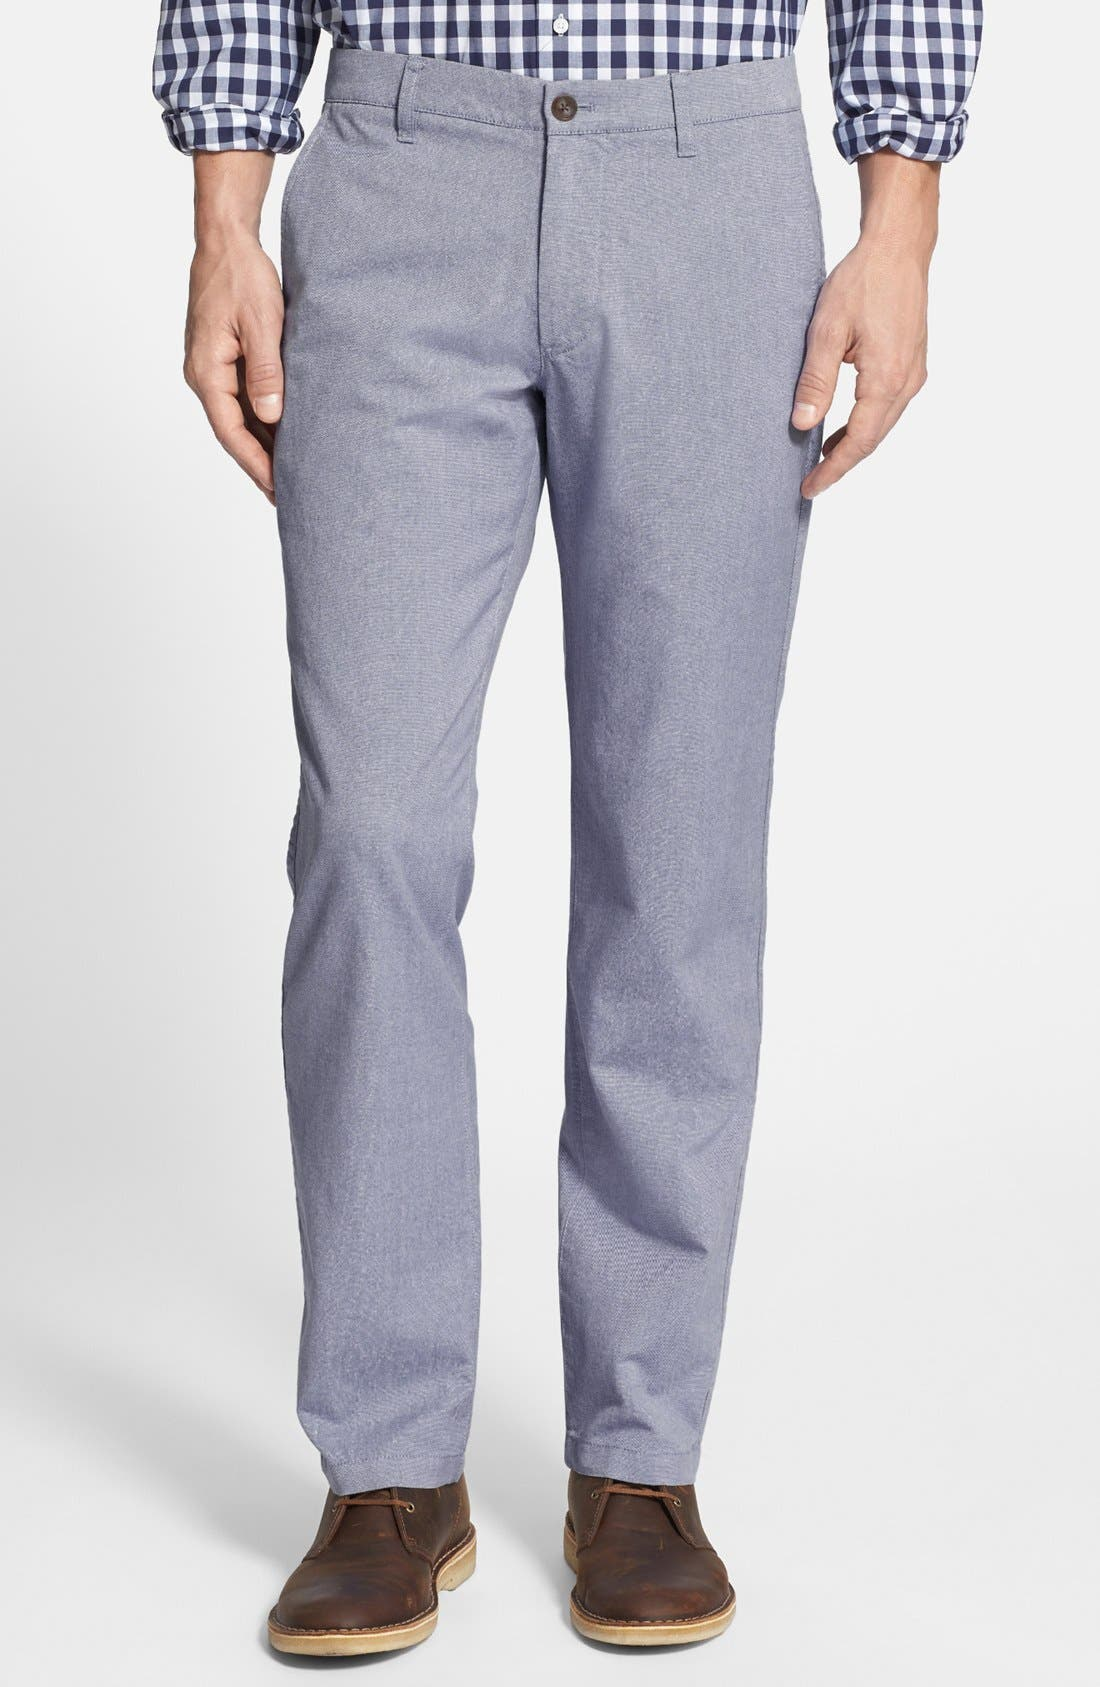 Alternate Image 1 Selected - Bonobos 'Oxley' Straight Leg Chinos